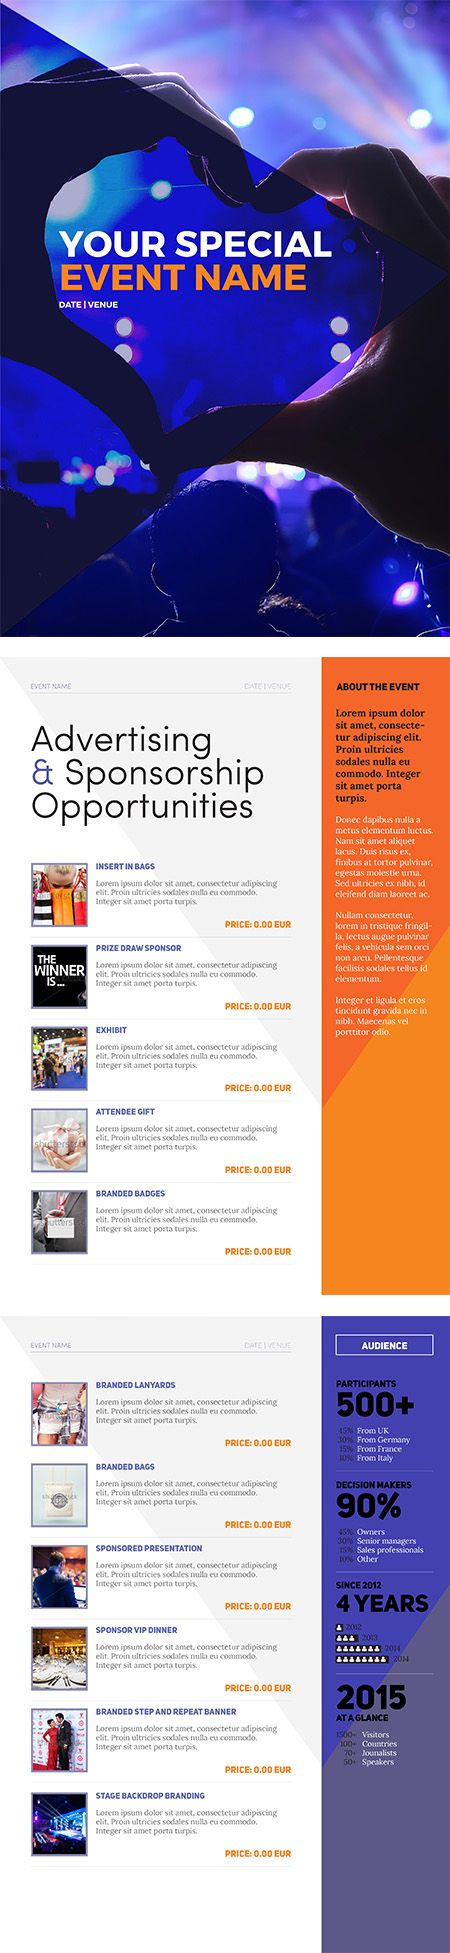 Sponsorship Package Template Event Management Tips – Sponsorship Packages Templates